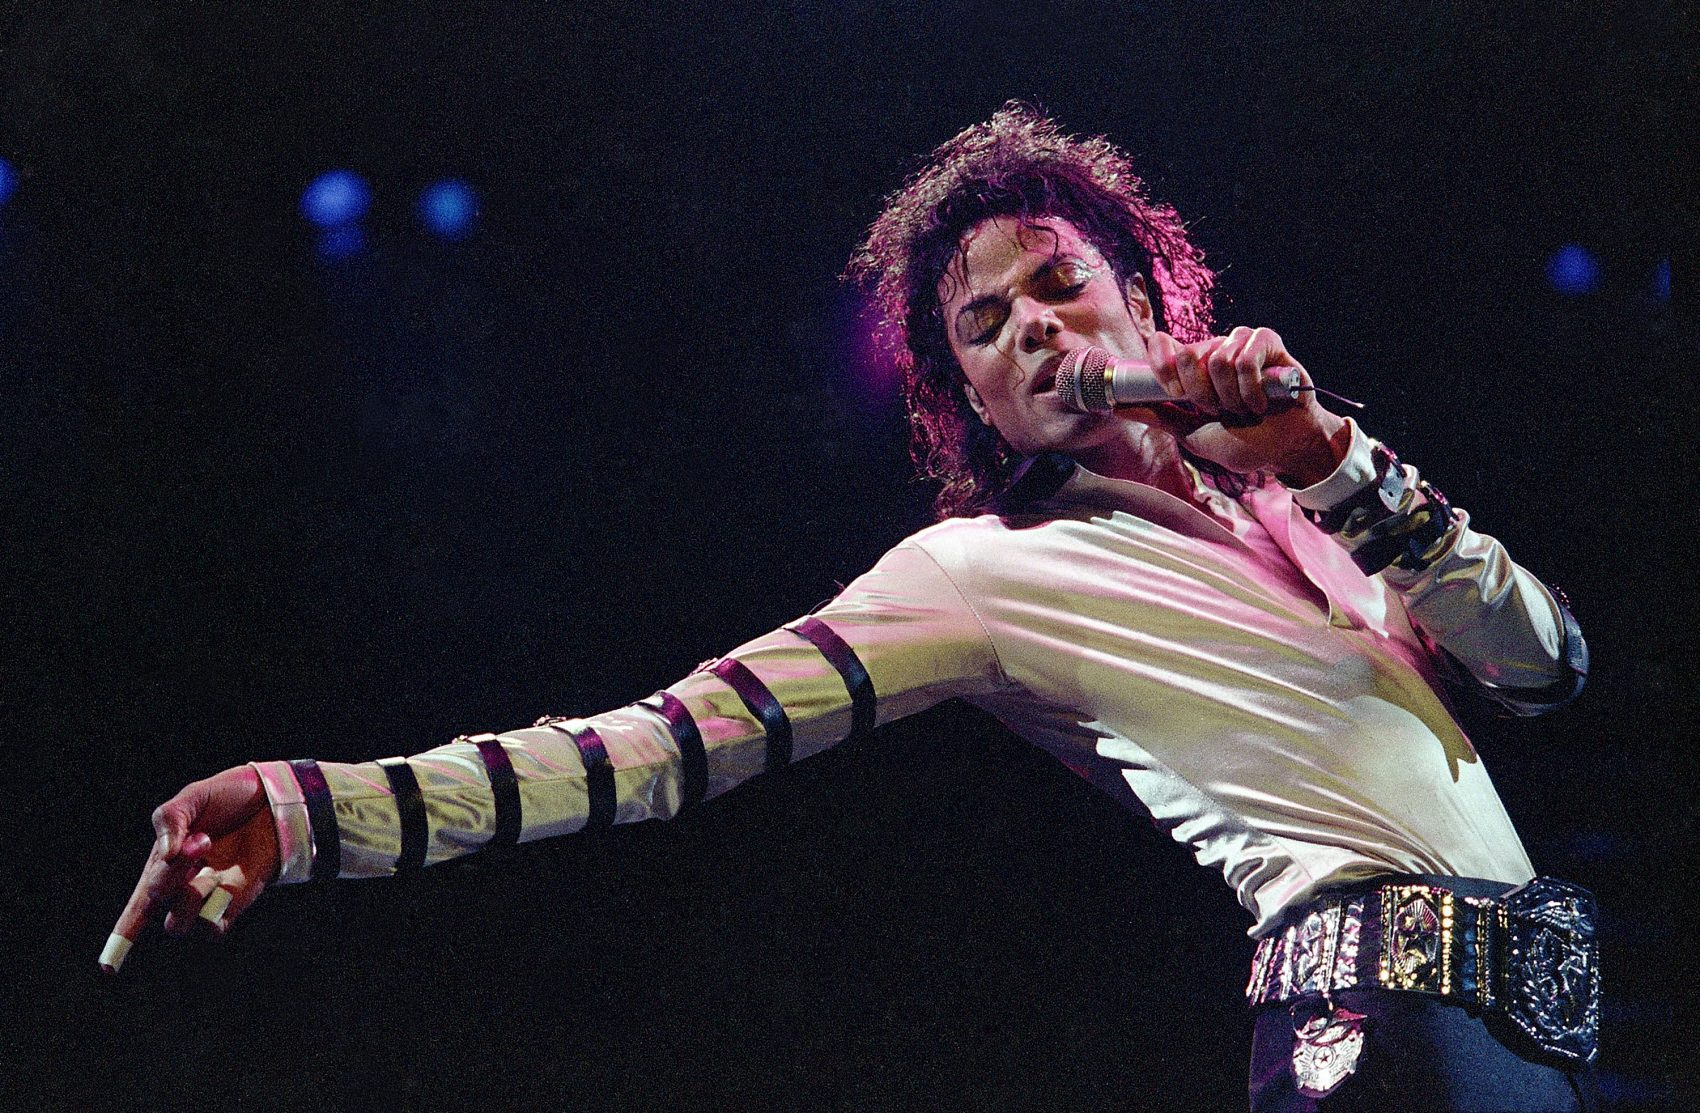 Michael Jackson leans, points and sings during the opening performance of his 13-city U.S. tour, Tuesday, Feb. 24, 1988, in Kansas City. (Cliff Schiappa/AP)